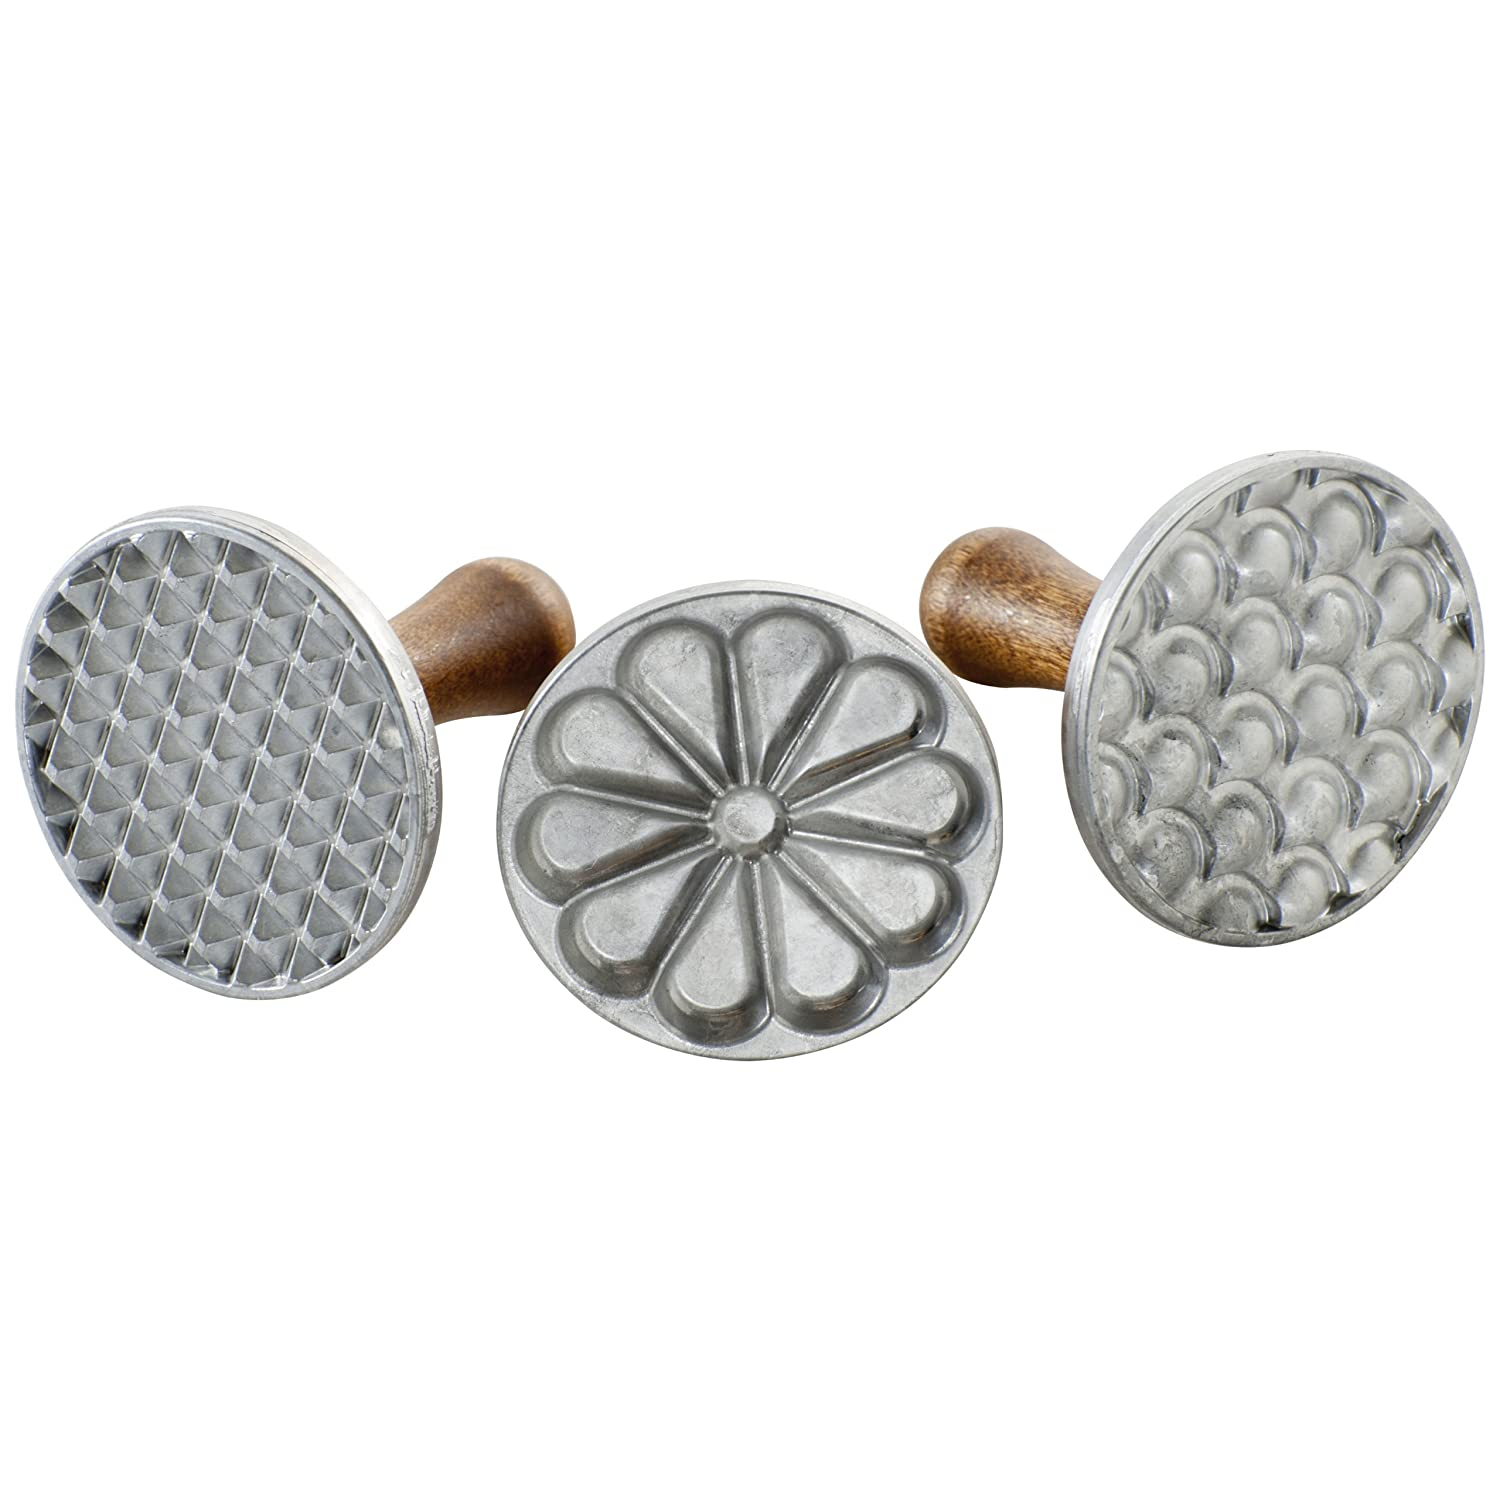 Nordicware All Season Cookie Impressions Stamps, Set of 3 Nordic Ware 01235